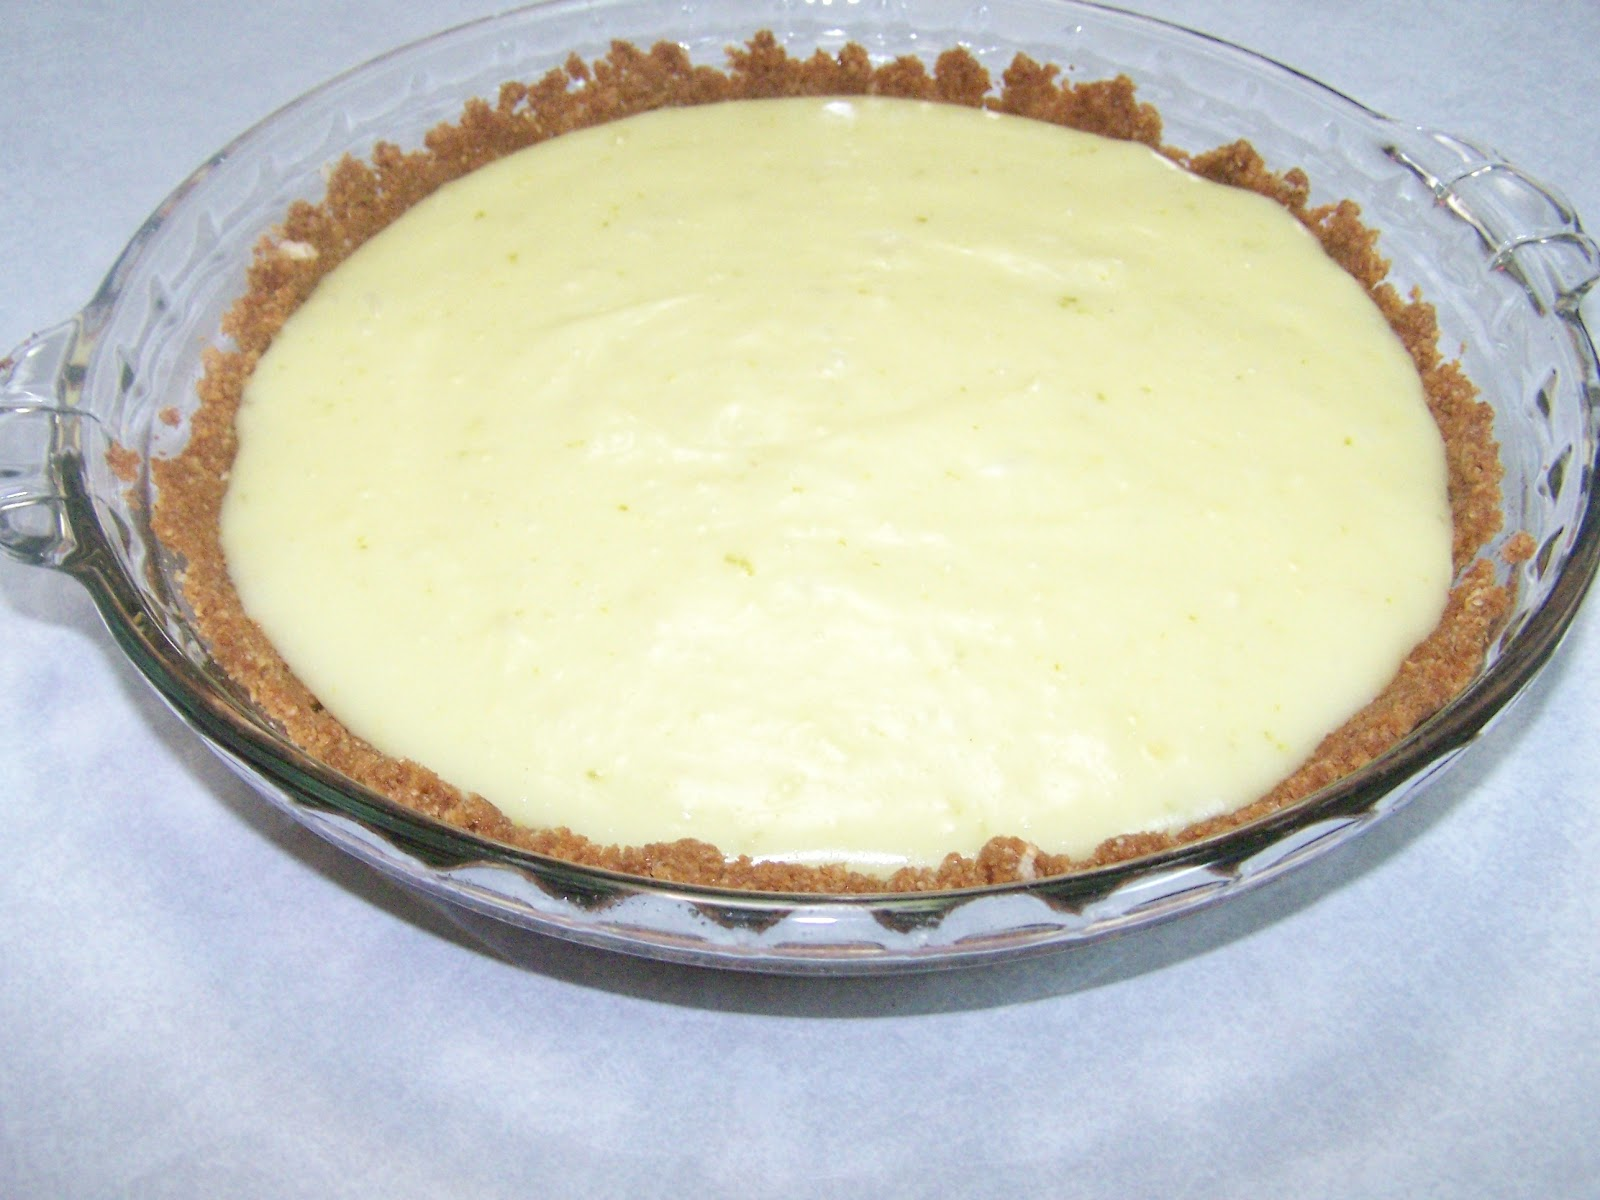 This Healthy Gluten Free Key Lime Pie Recipe is made with agave and stevia and so good you won't believe it's skinny